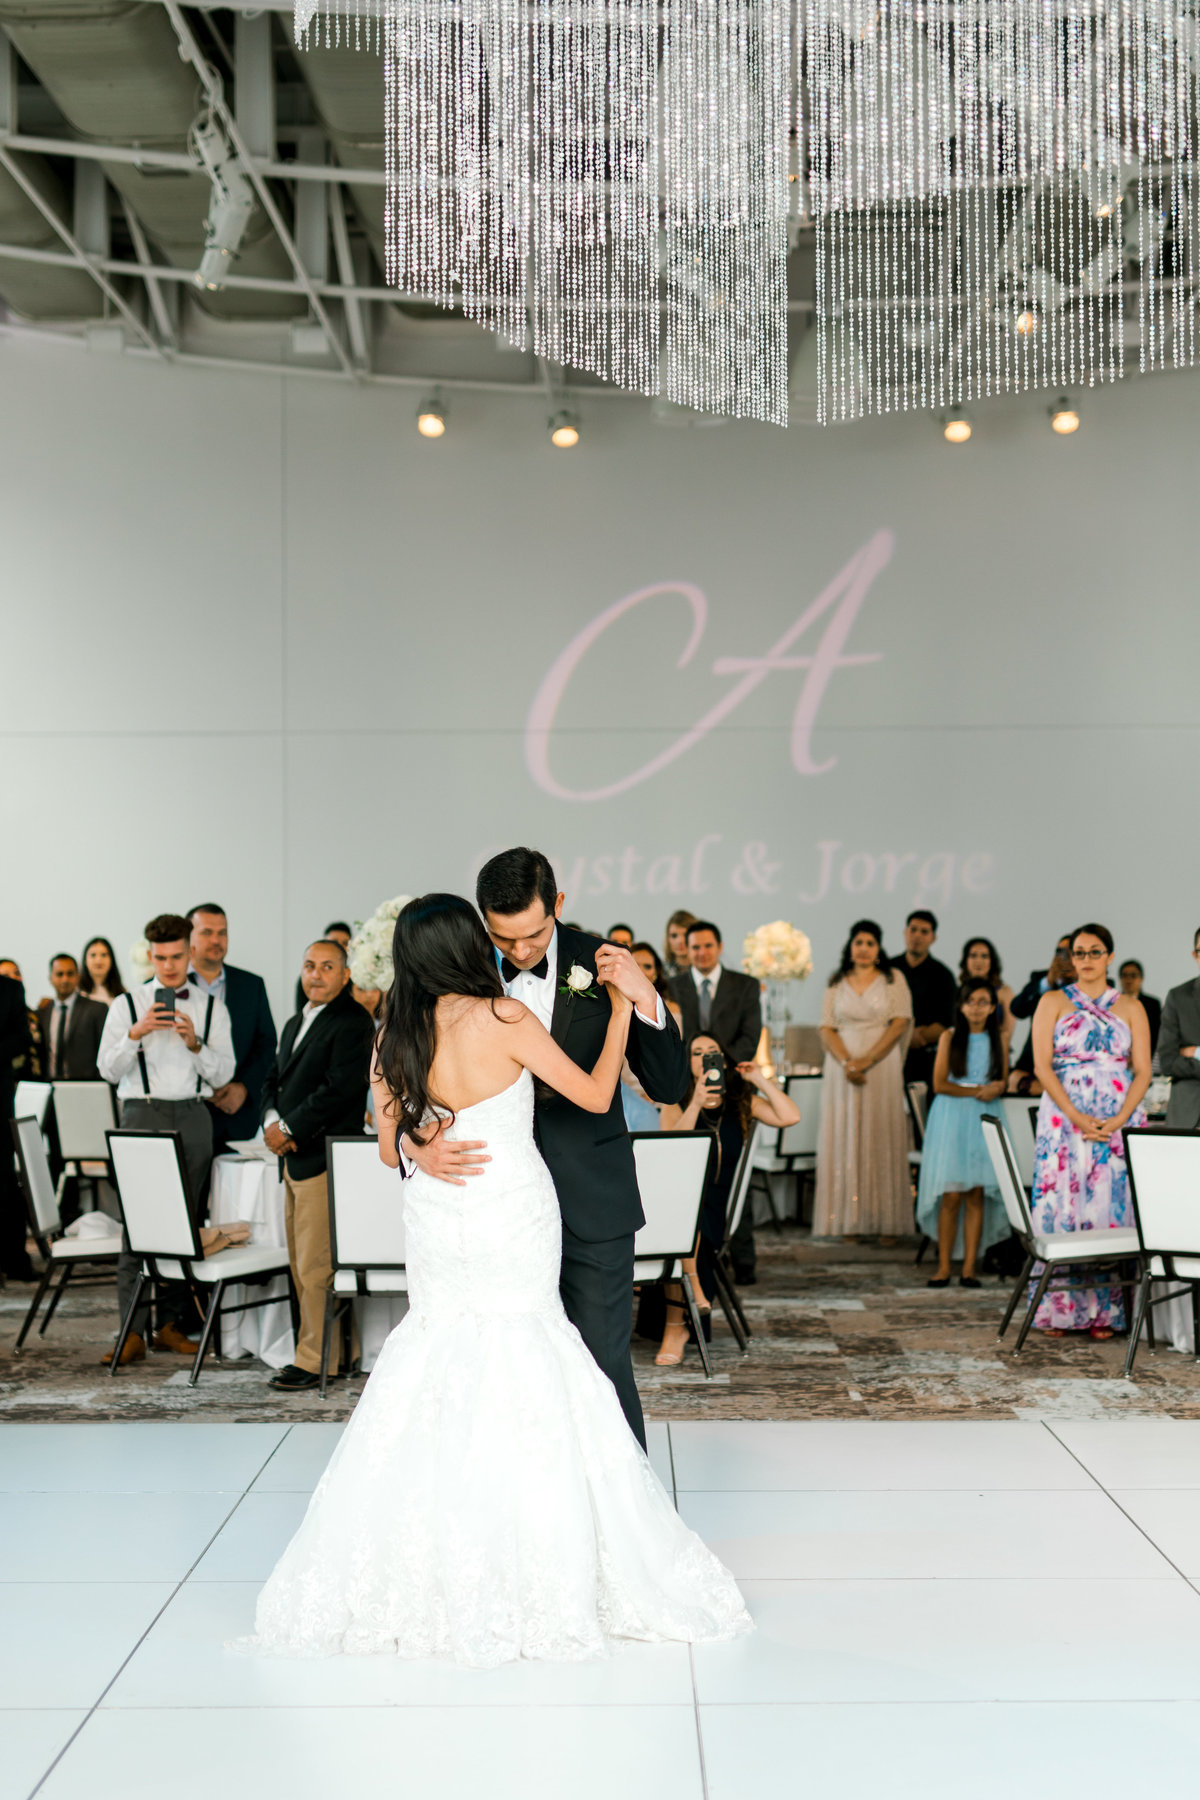 Crystal & Jose-45